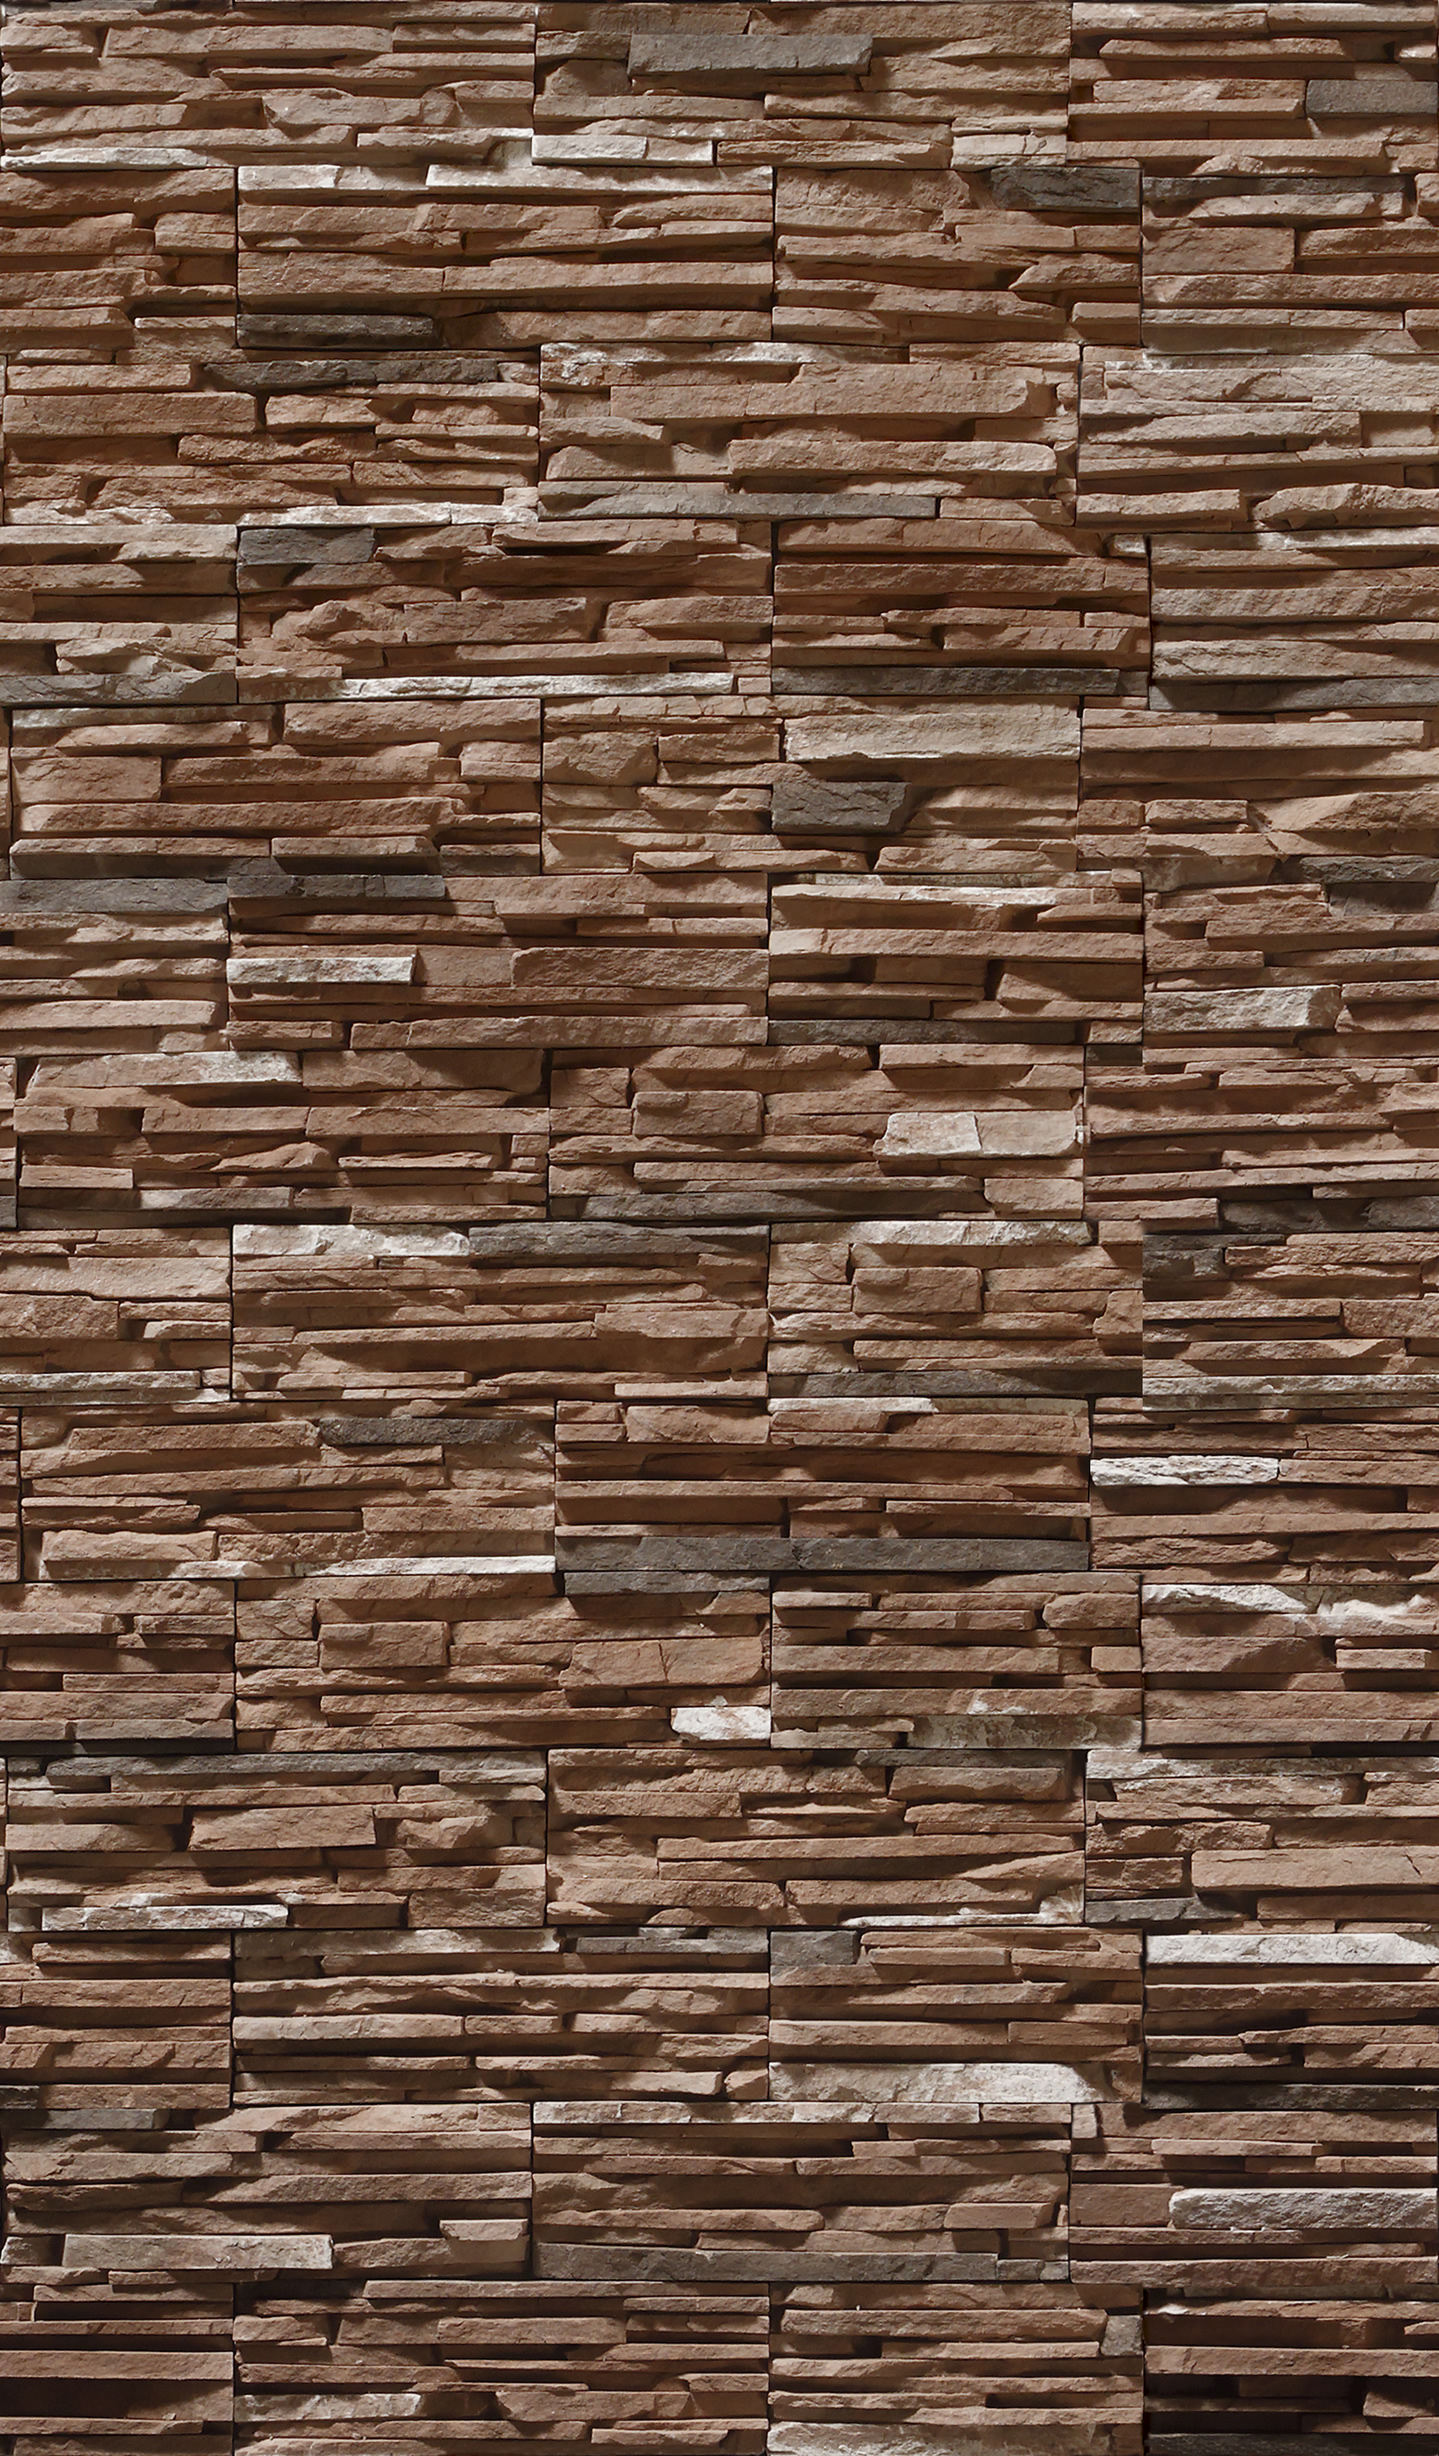 3d Wallpaper Or Wall Panel Or Wall Panels Stacked Stone Stone Wall Texture Stone Stone Wall Download